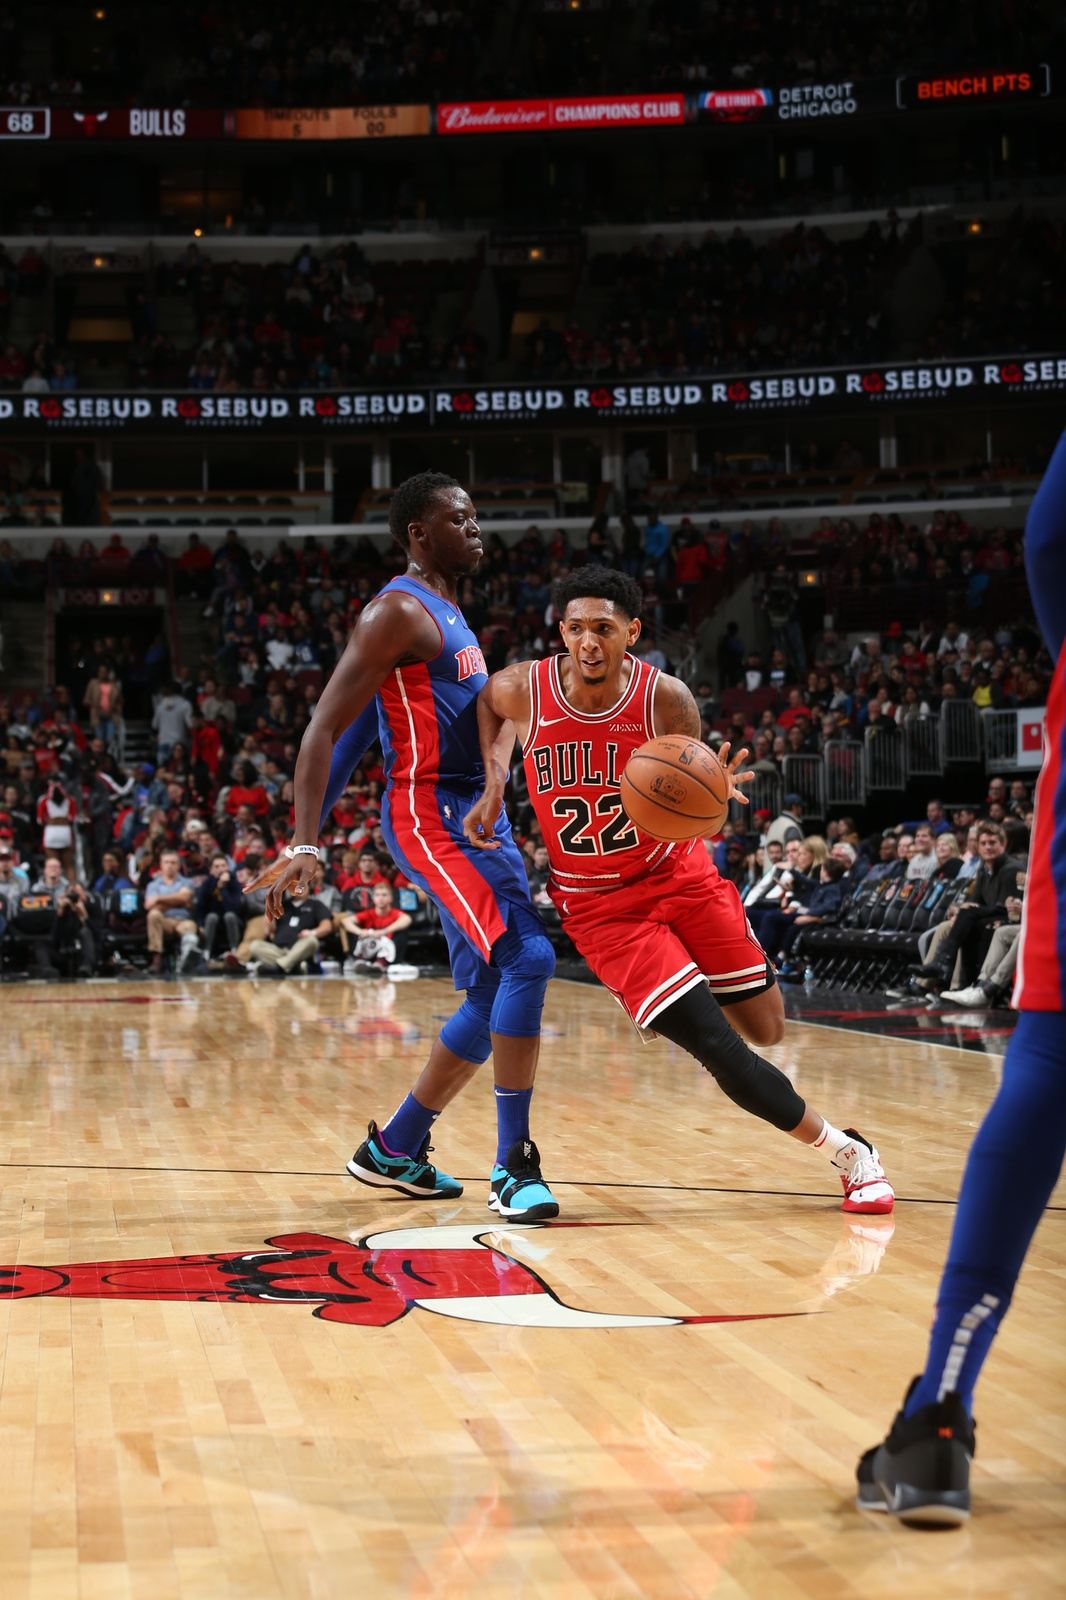 Cameron Payne of the Chicago Bulls dribbles the ball in a game against the Detroit Pistons.